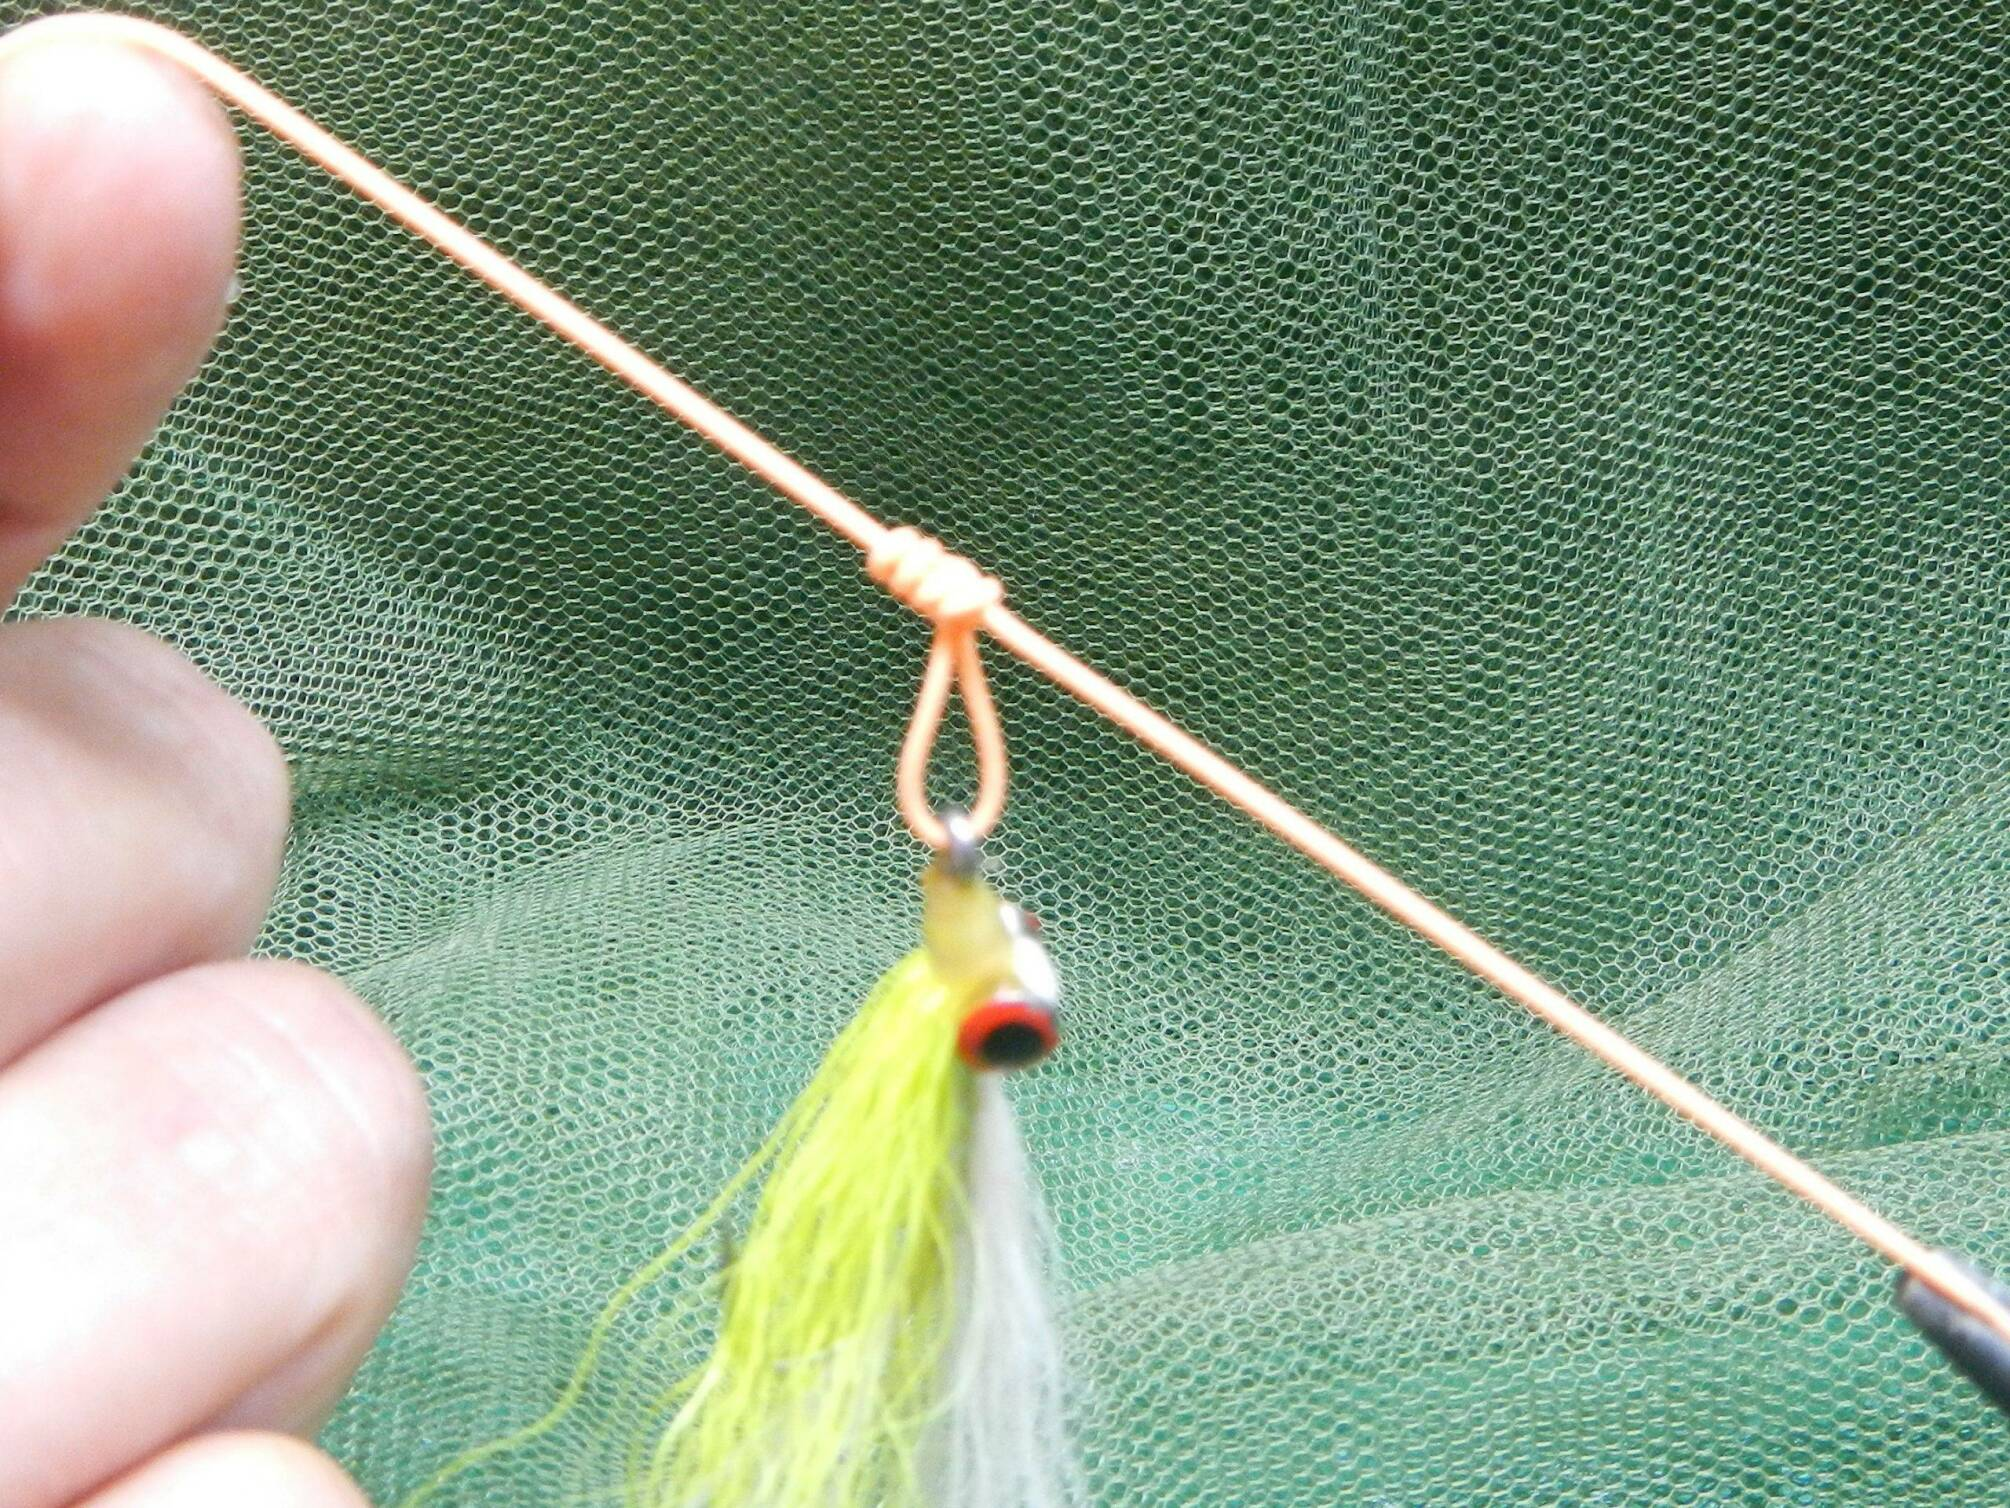 Pull gently on both ends to close the overhand knot. Wet and cinch down. You can adjust the size of the loop with a little practice